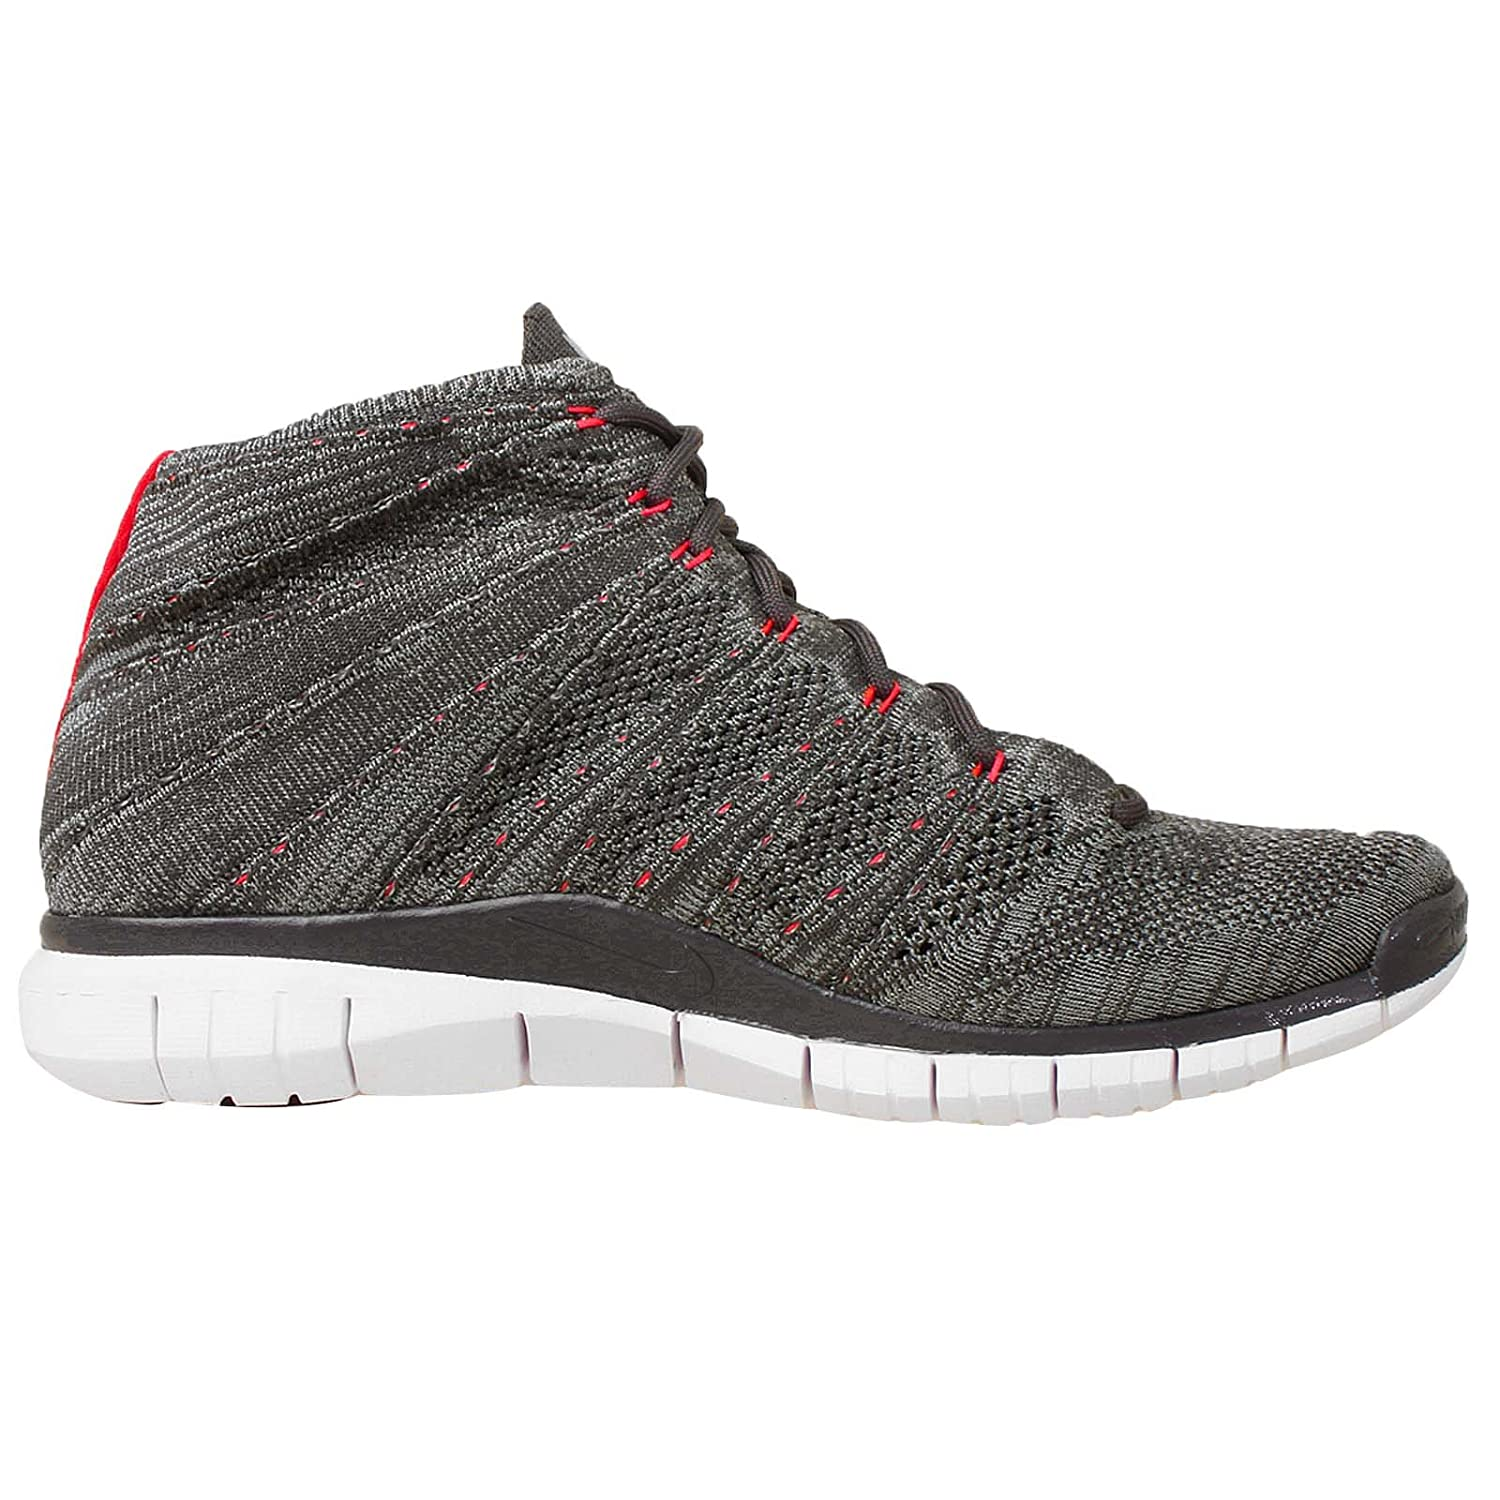 Free Flyknit Nike Amazon